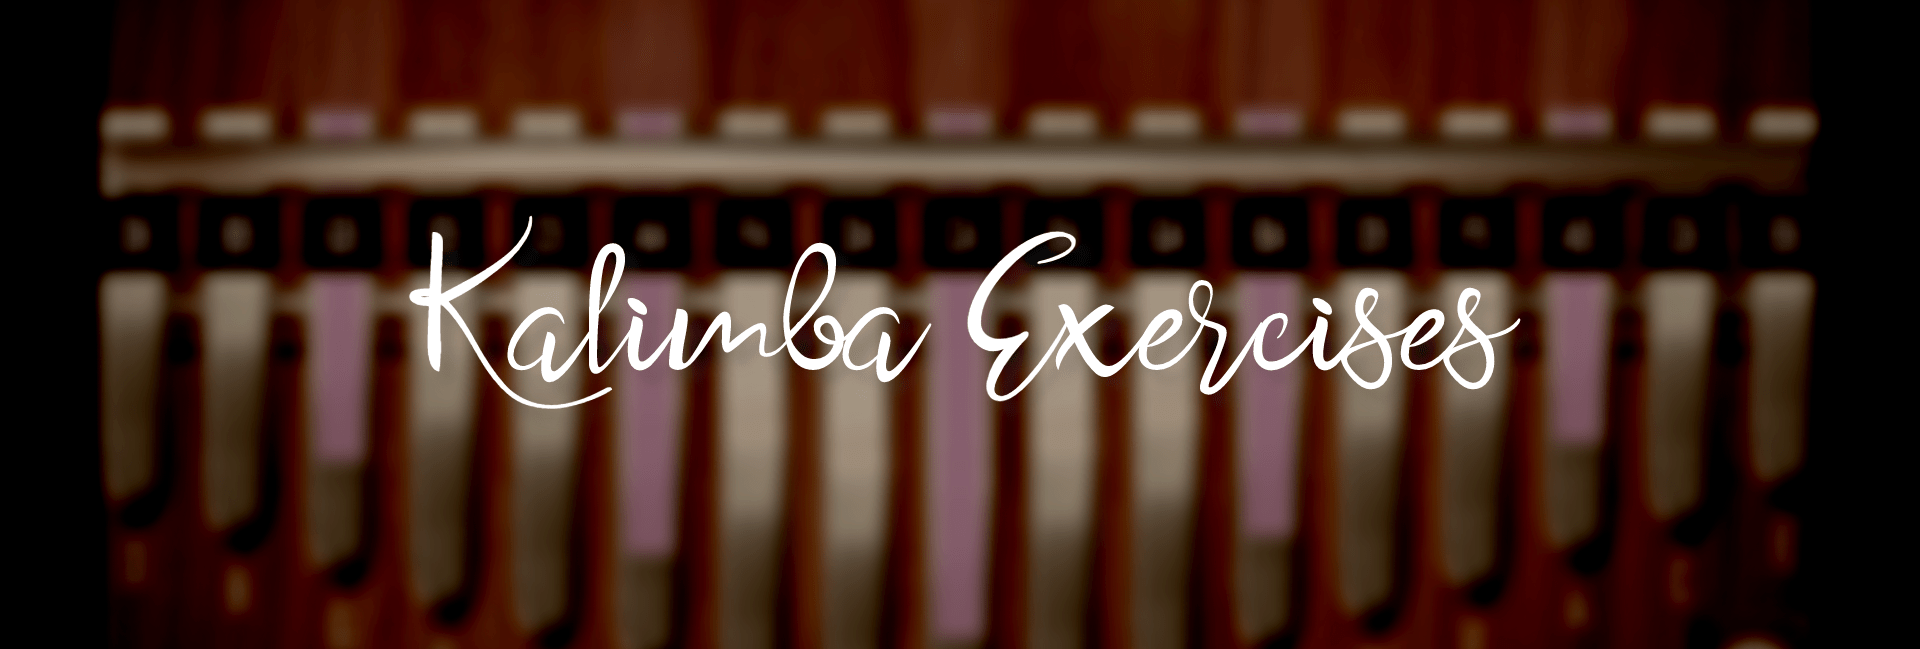 "title images with the text ""Kalimba Exercises"""